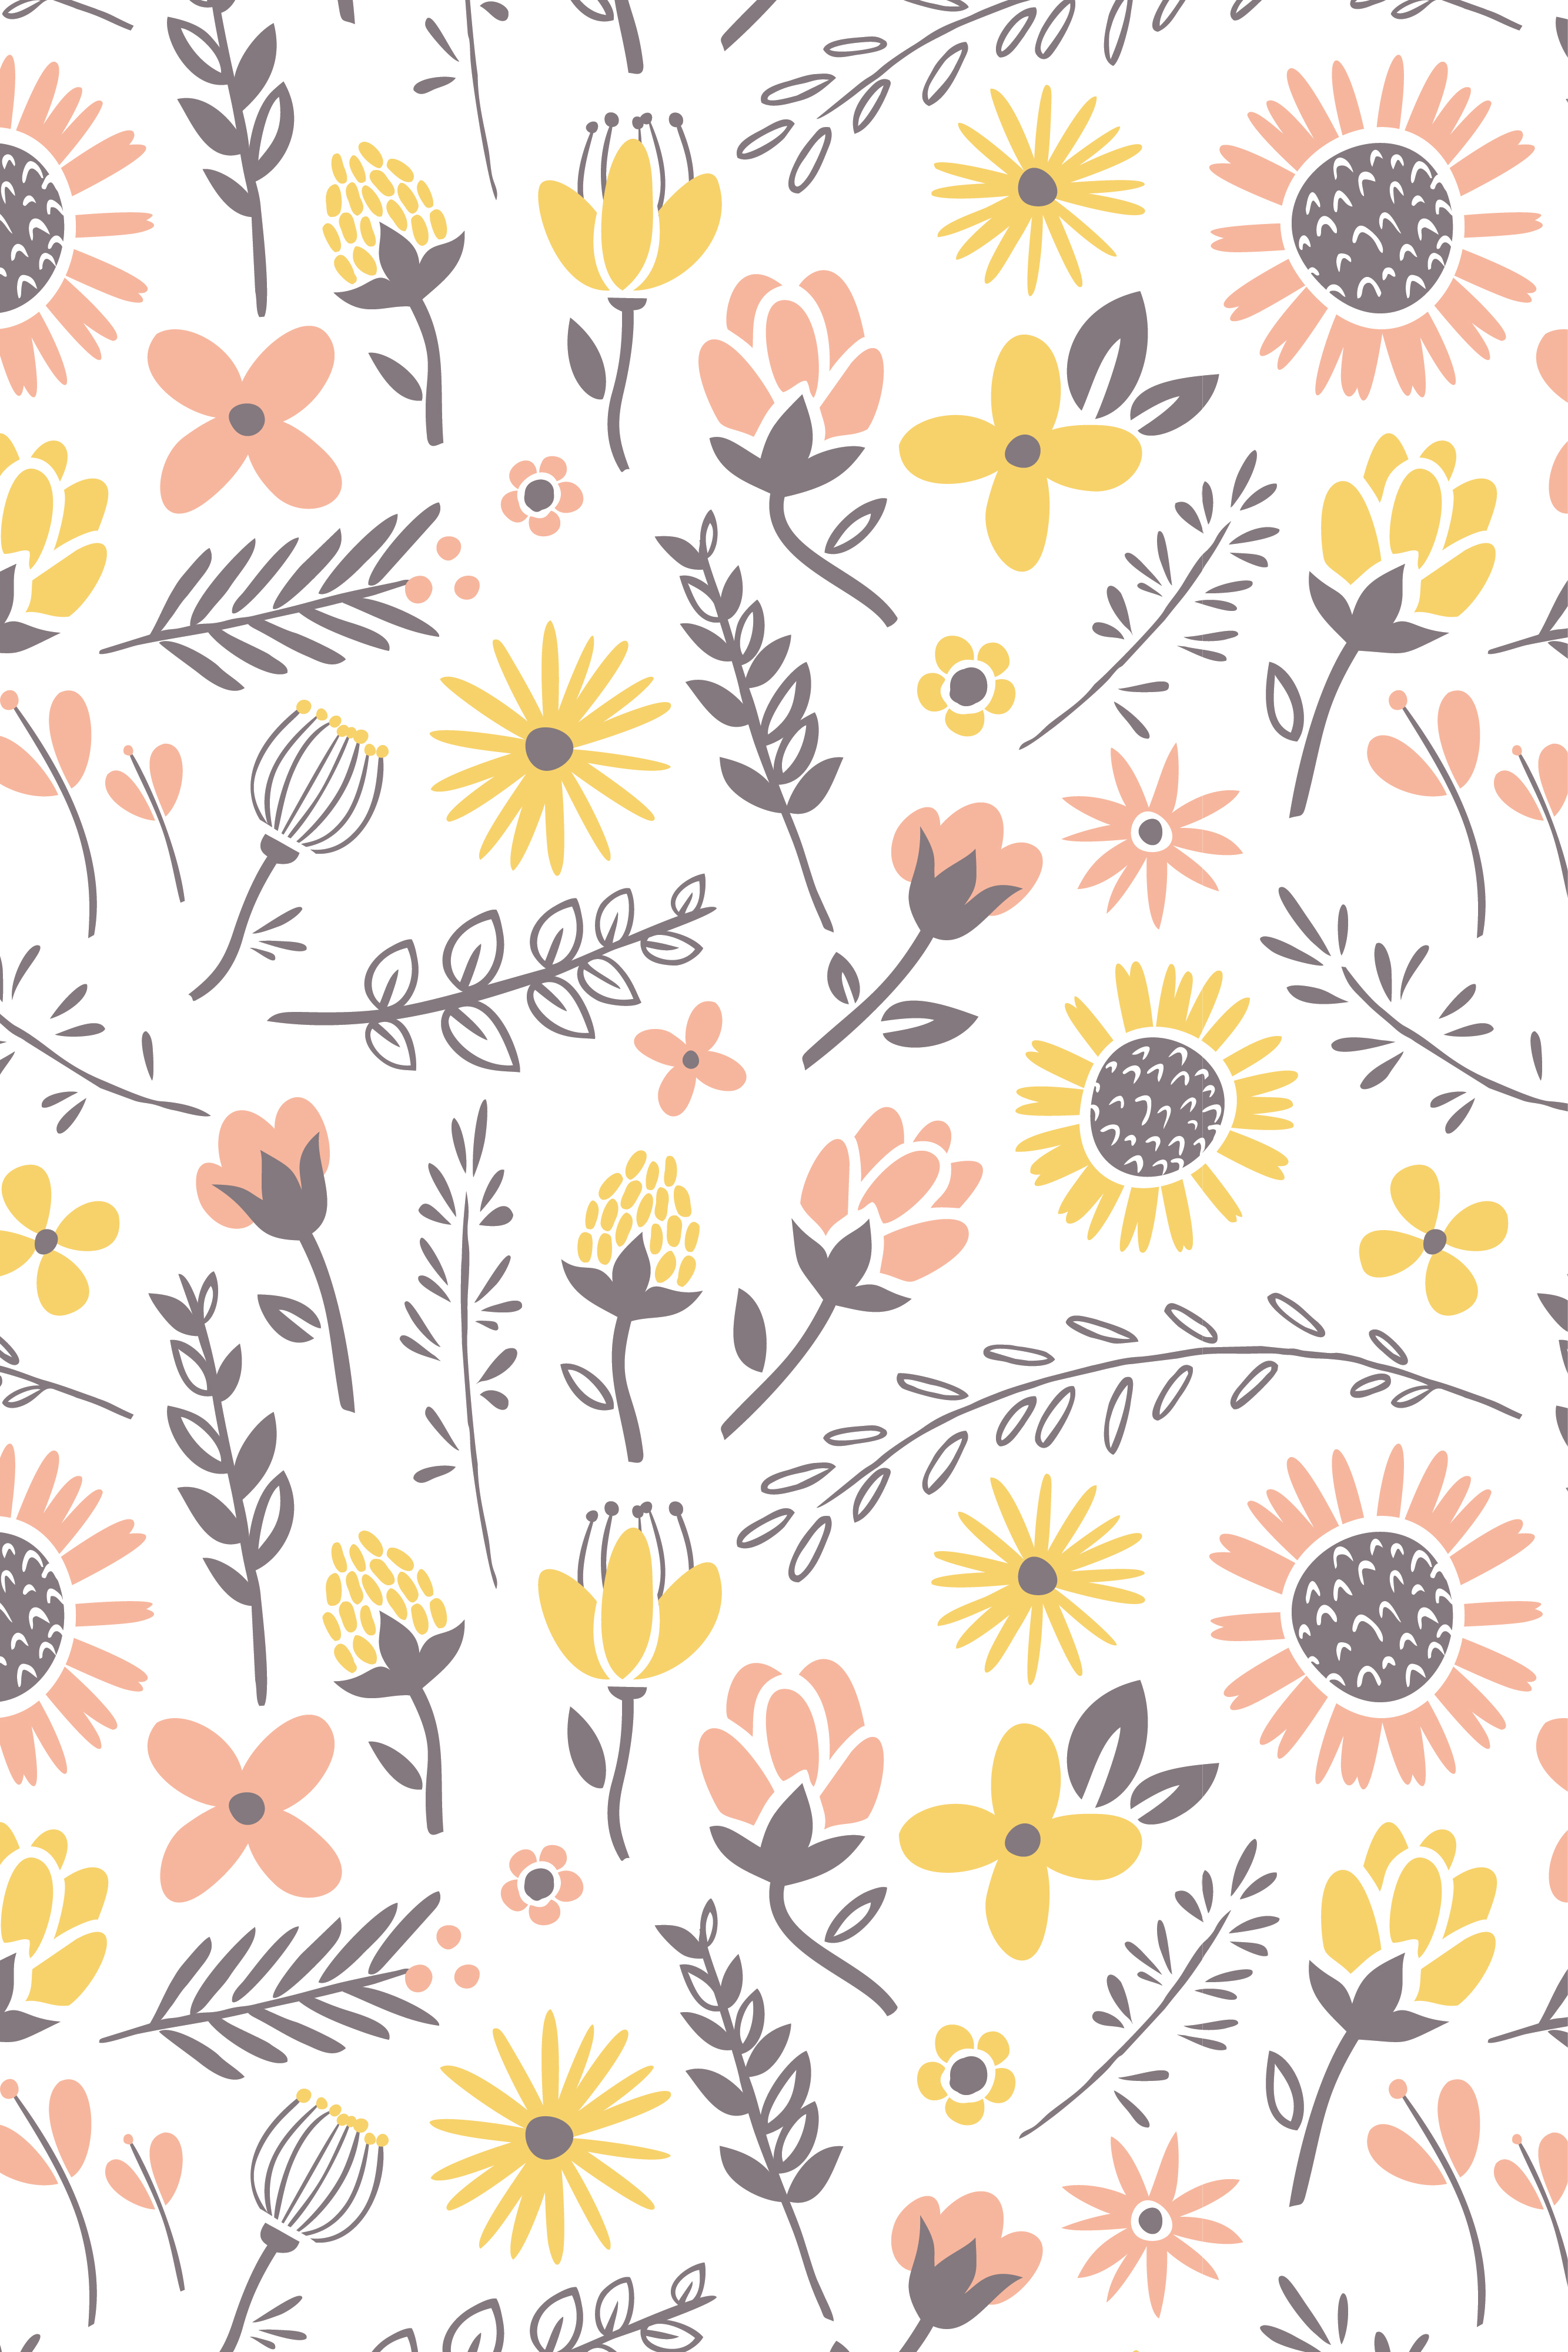 Free Download Flowers Iphone Wallpaper Cute Patterns Phone